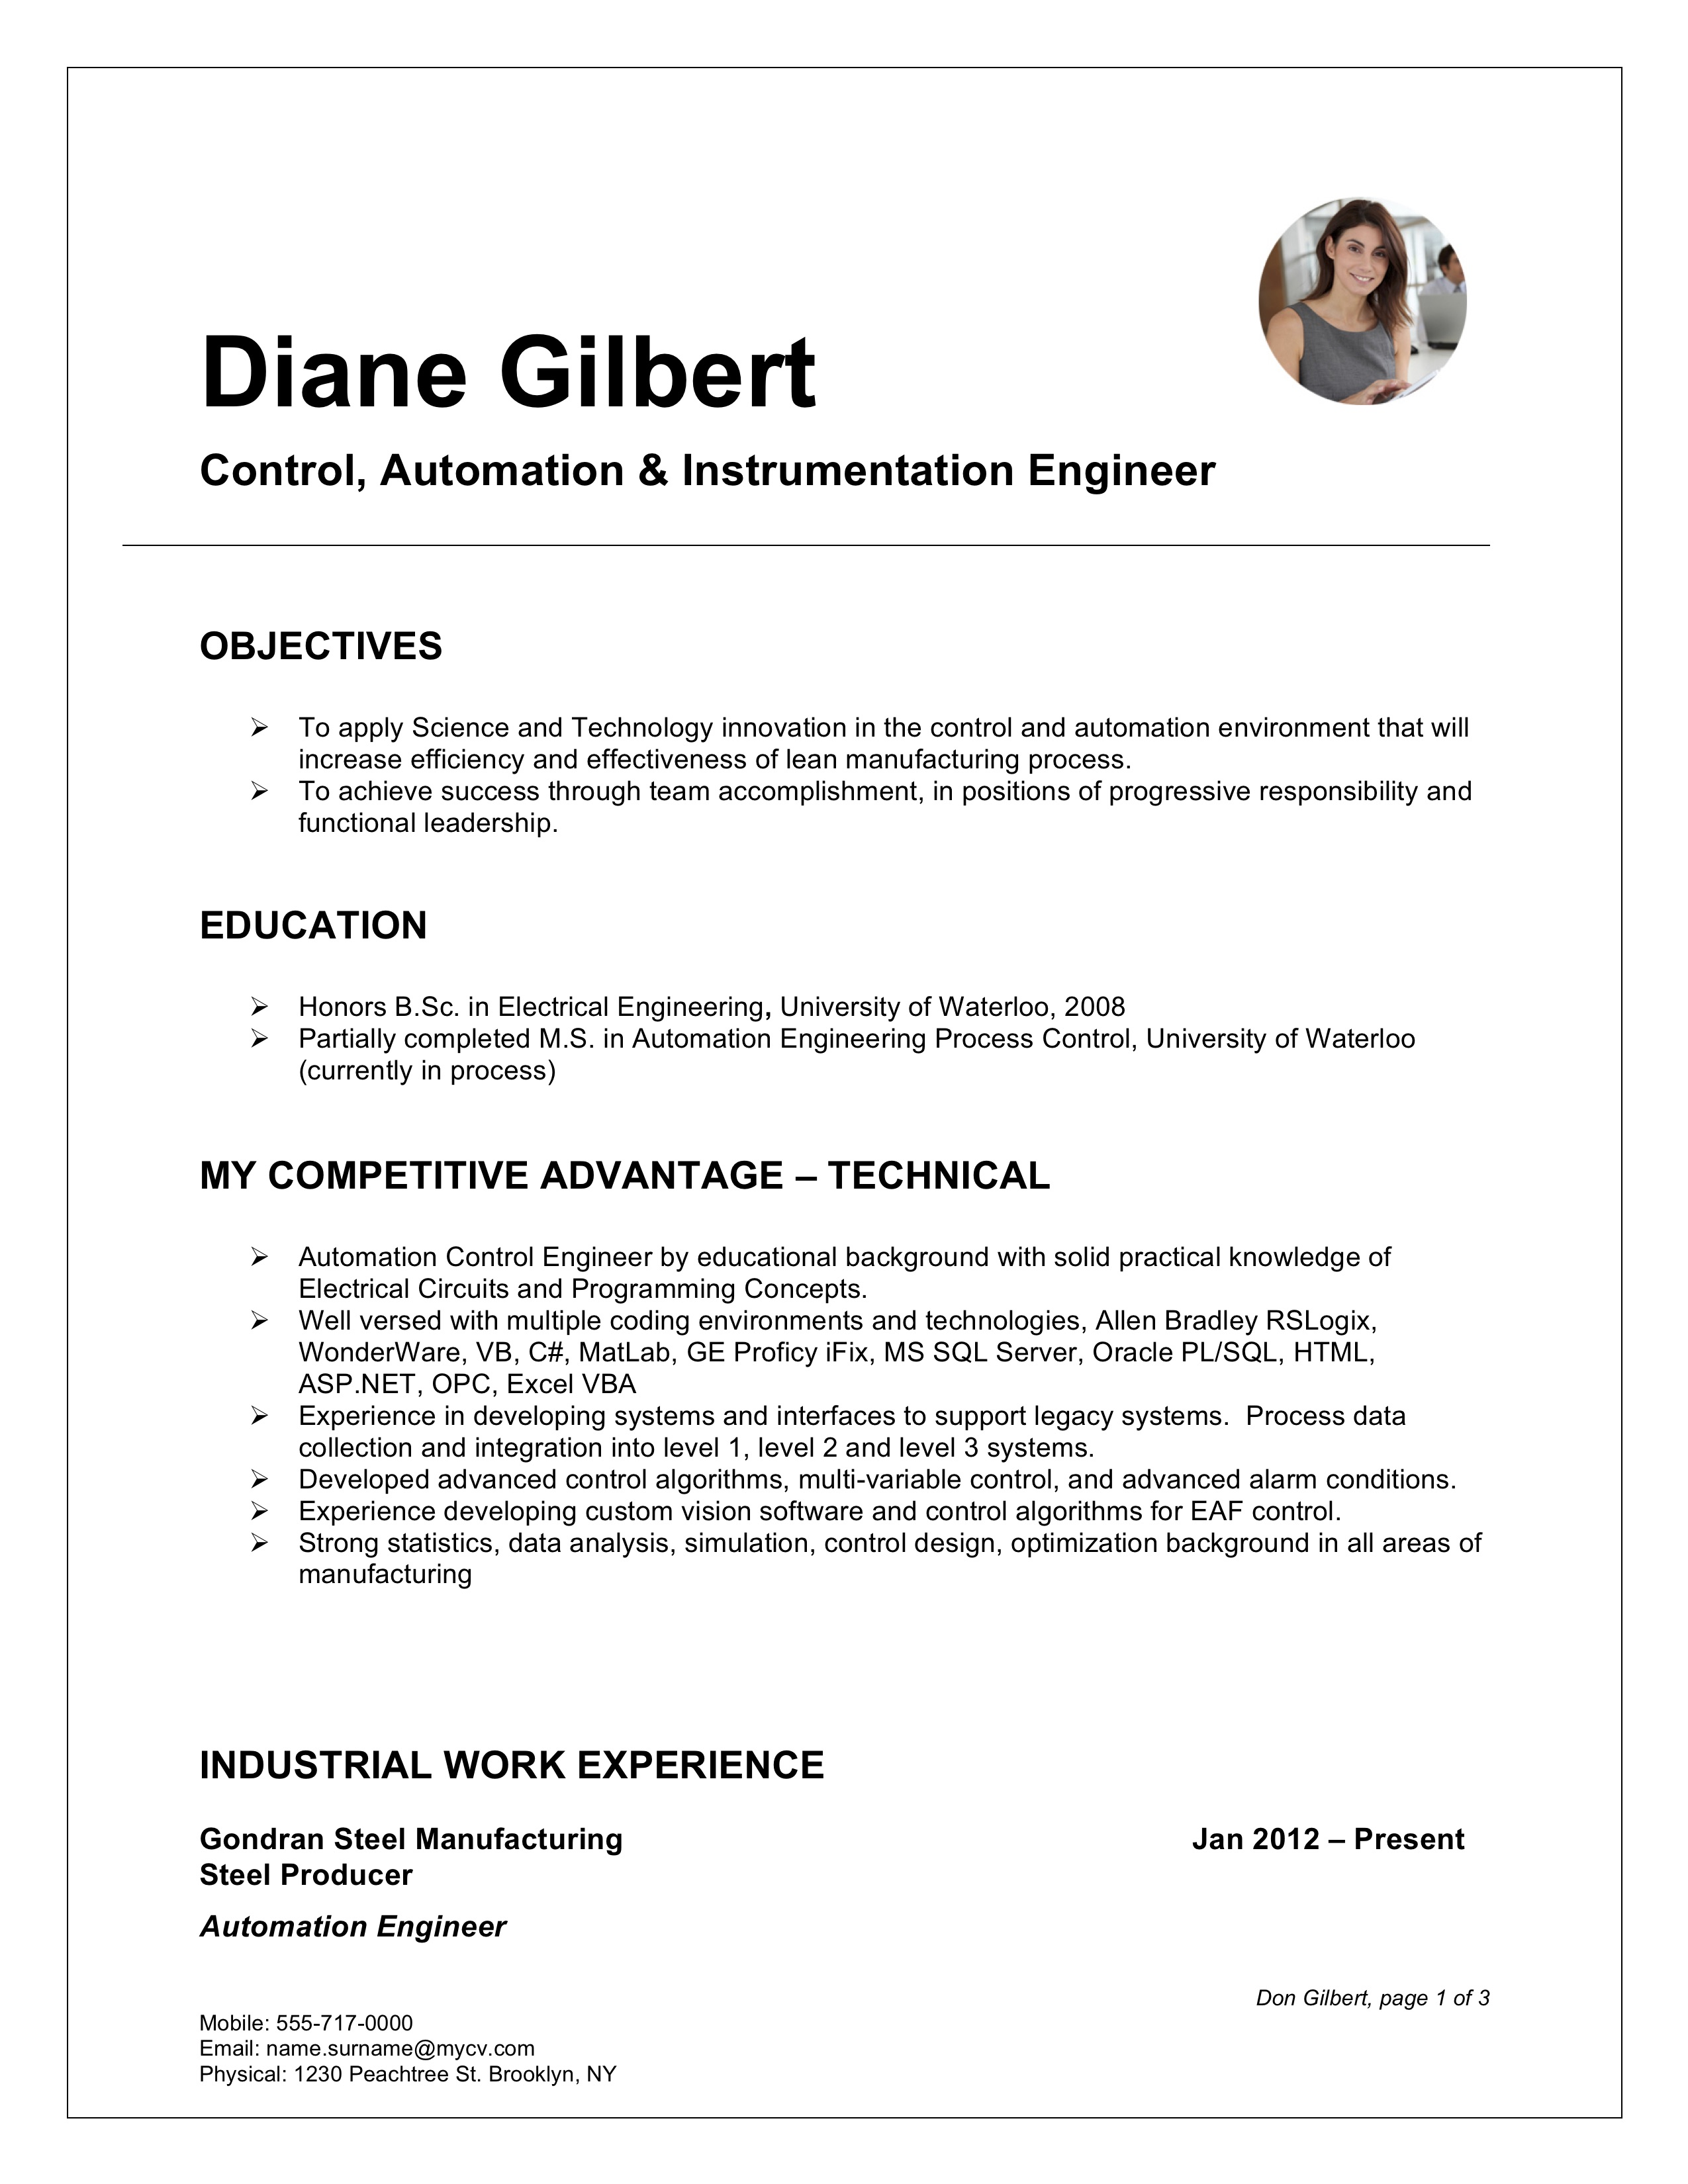 Resume Templates 2019 Pdf And Word Free Downloads